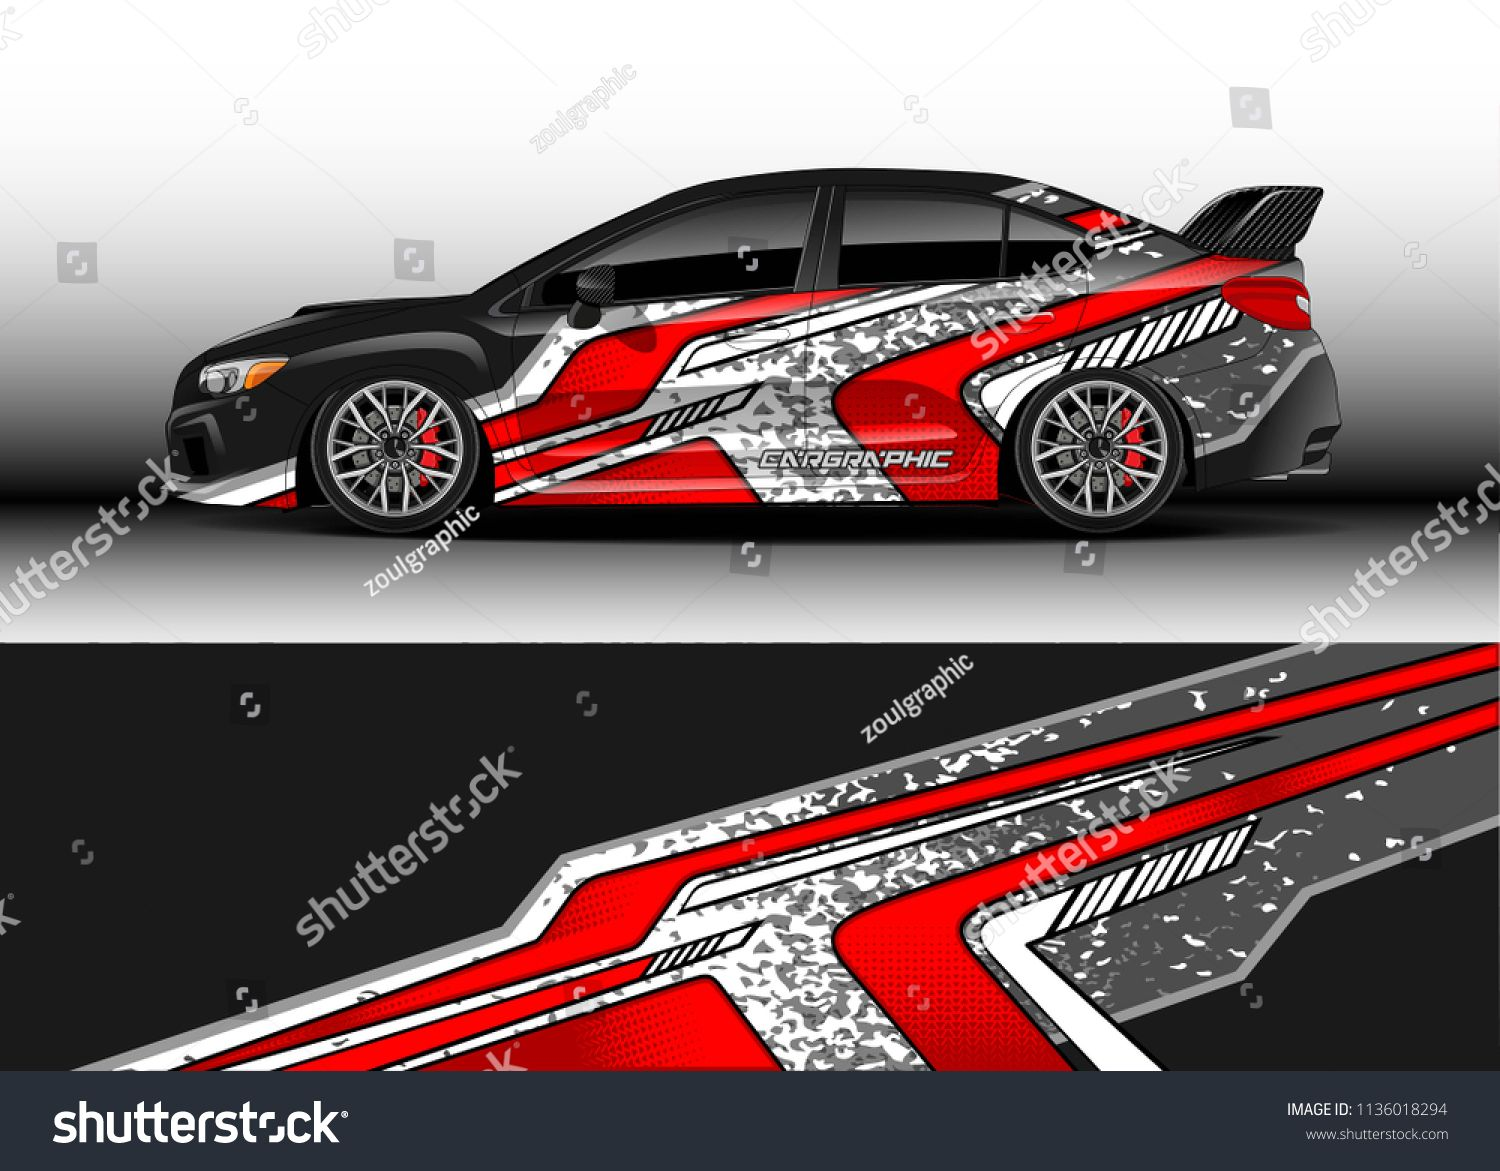 Car decal graphic vector truck and cargo van wrap vinyl sticker graphic abstract stripe designs for branding and drift livery car